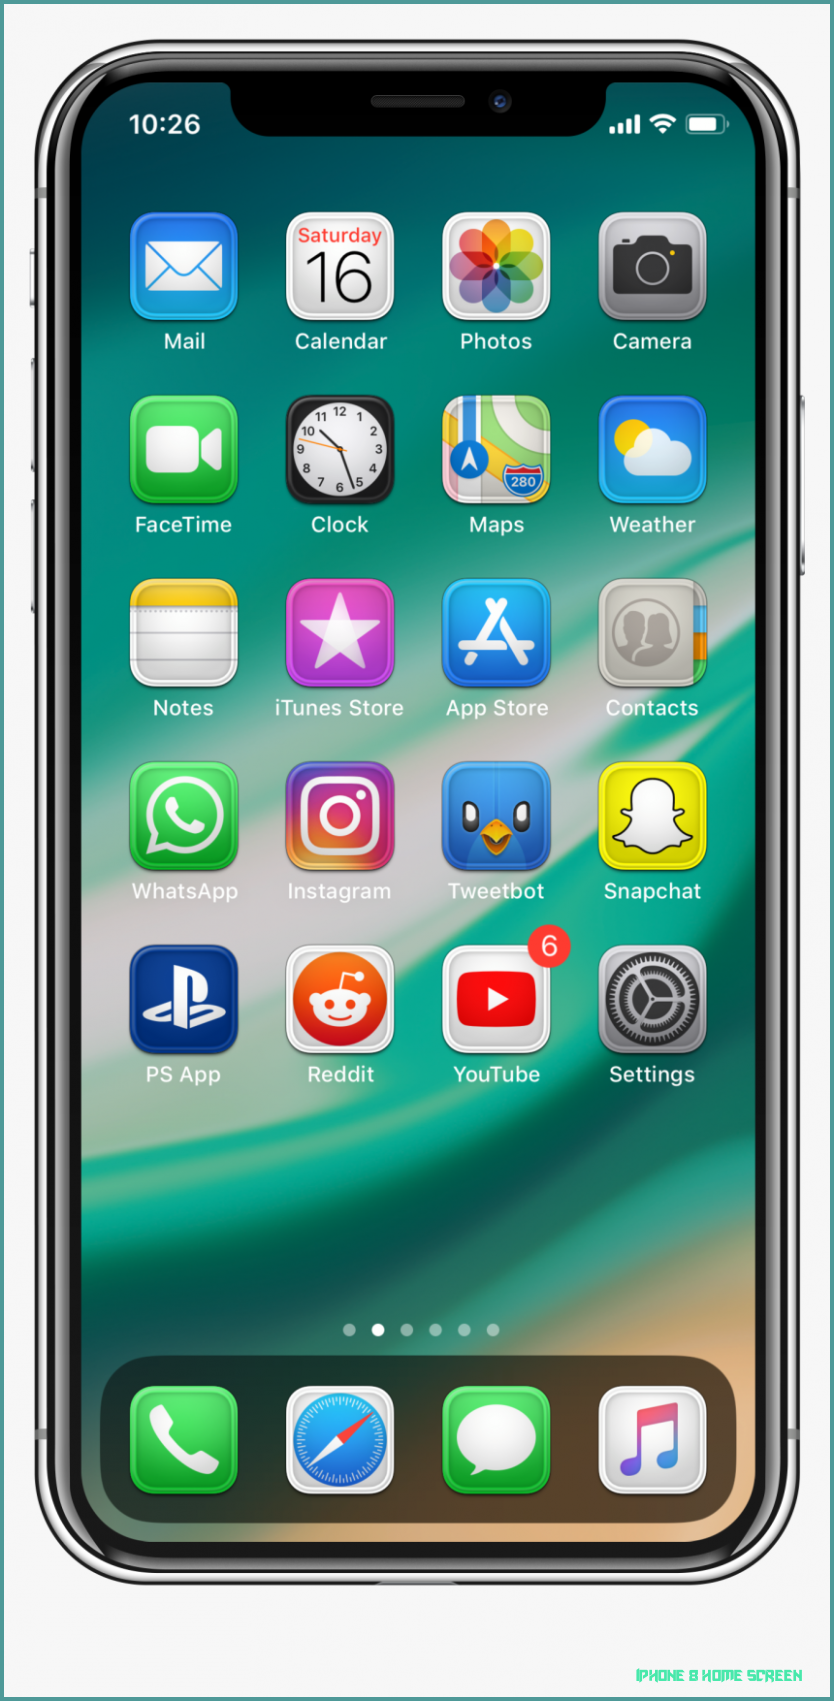 Never Underestimate The Influence Of Iphone 9 Home Screen Iphone 9 Home Screen Https Homenitro Com Never Underestimat Iphone 9 Homescreen Homescreen Iphone